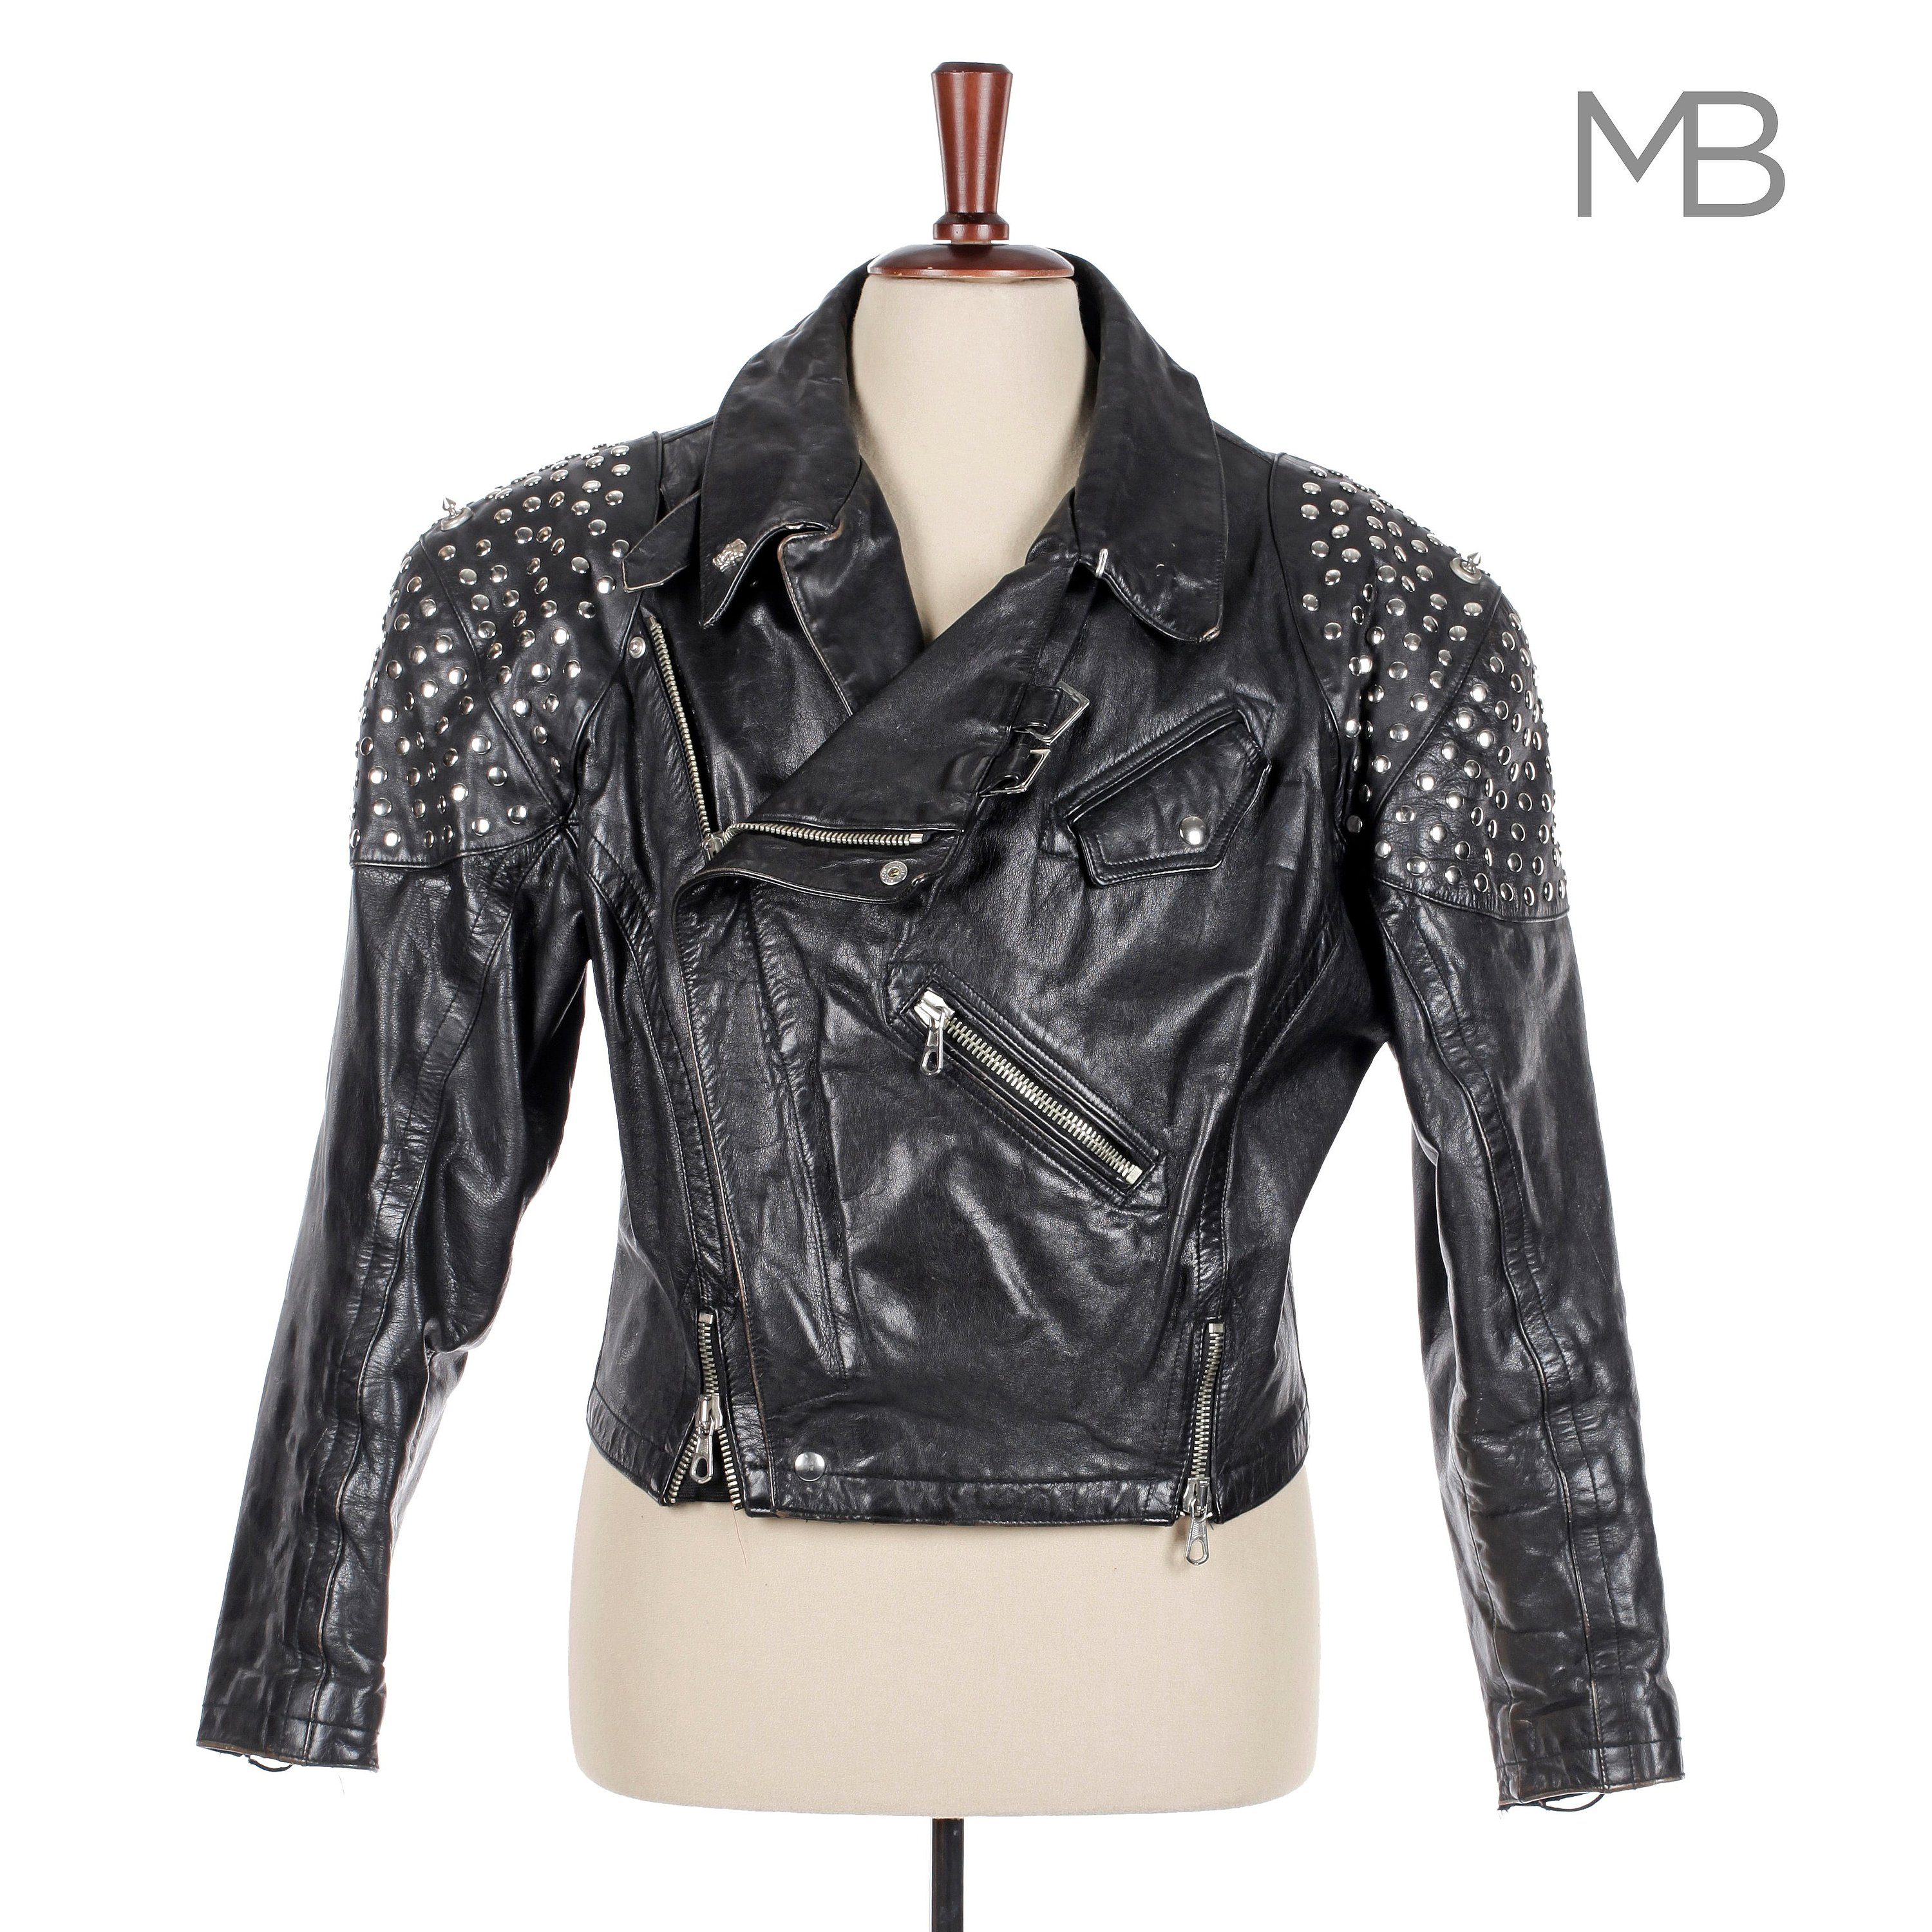 JEAN-PAUL GAULTIER, a men's black leather studed jacket from the late 1980s.